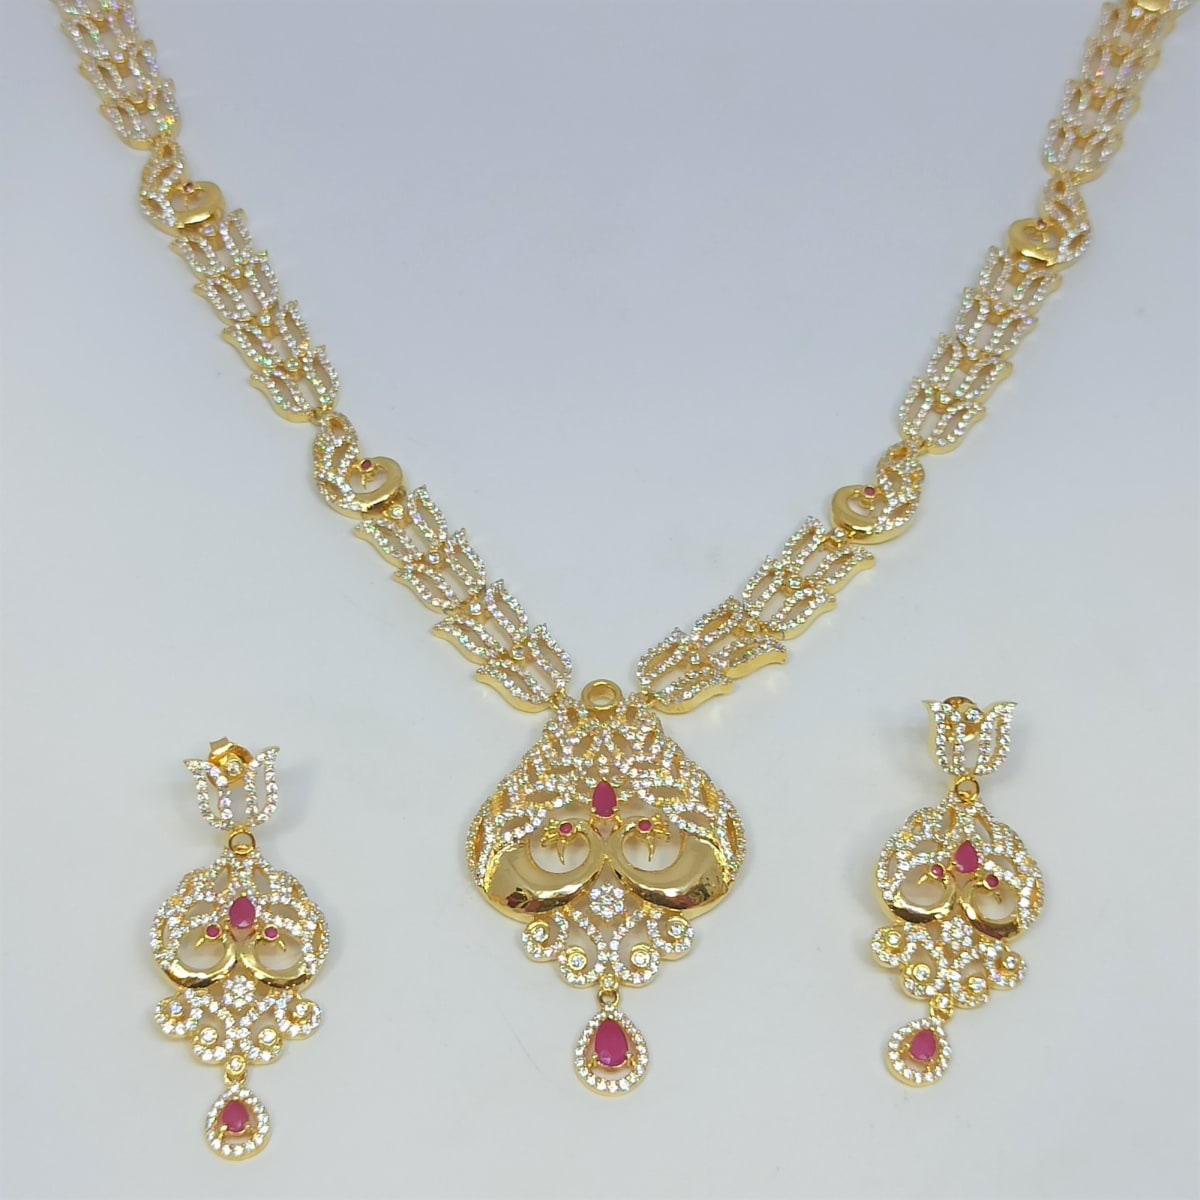 Two Peacock Cz Necklace